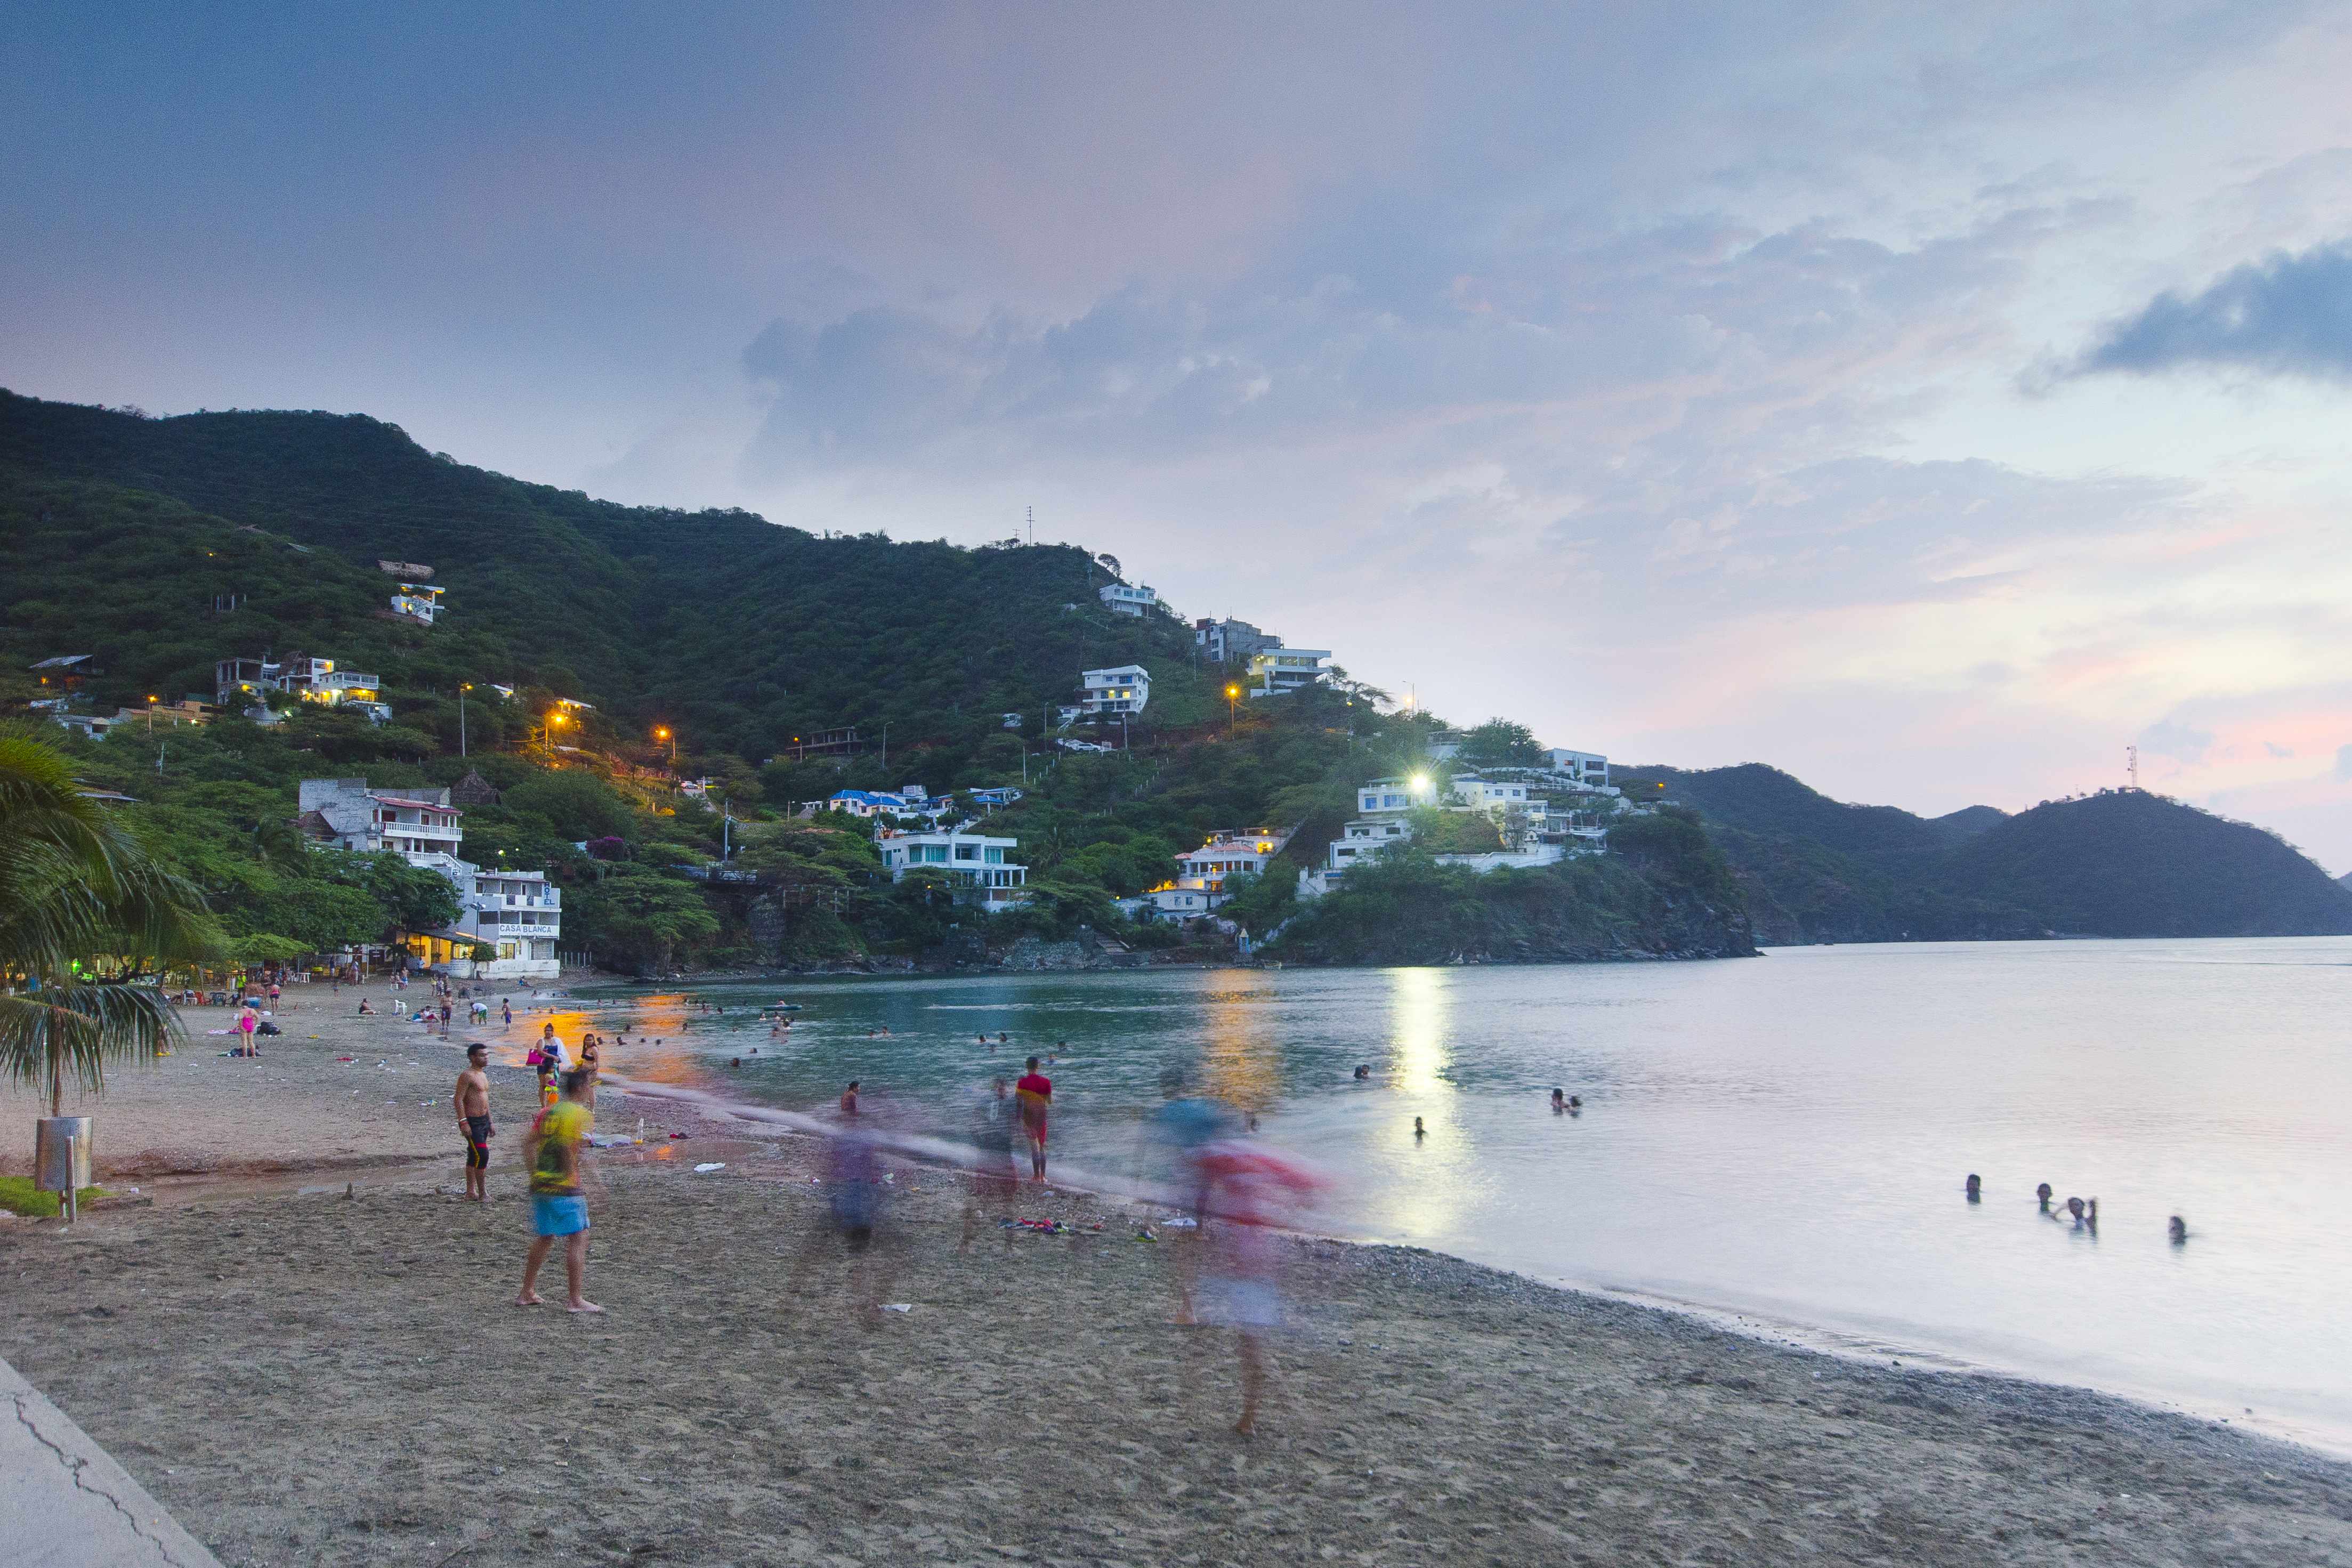 Tyrona beach in Santa Marta